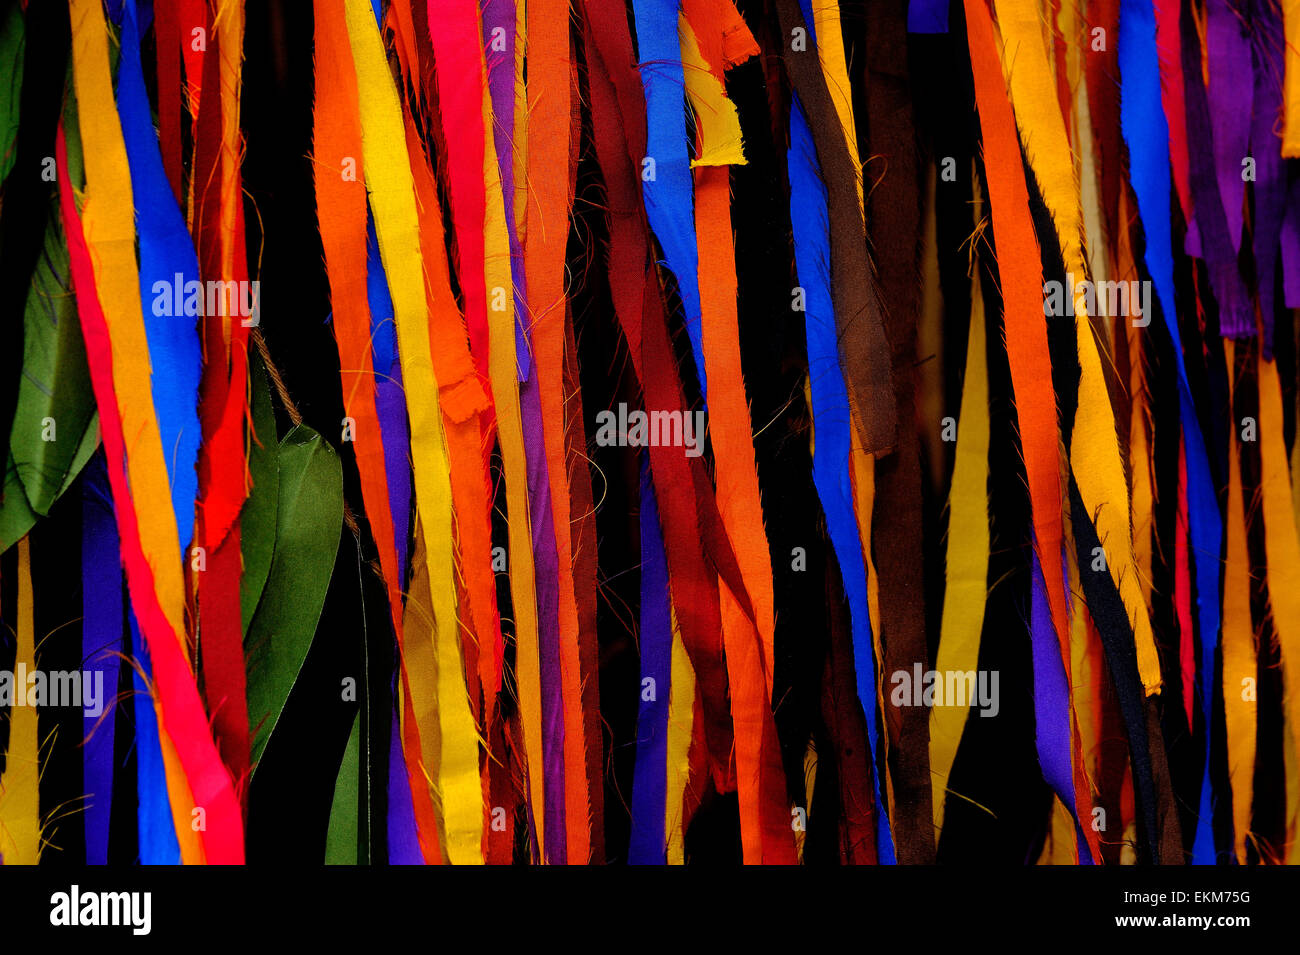 colorful cloth - Stock Image